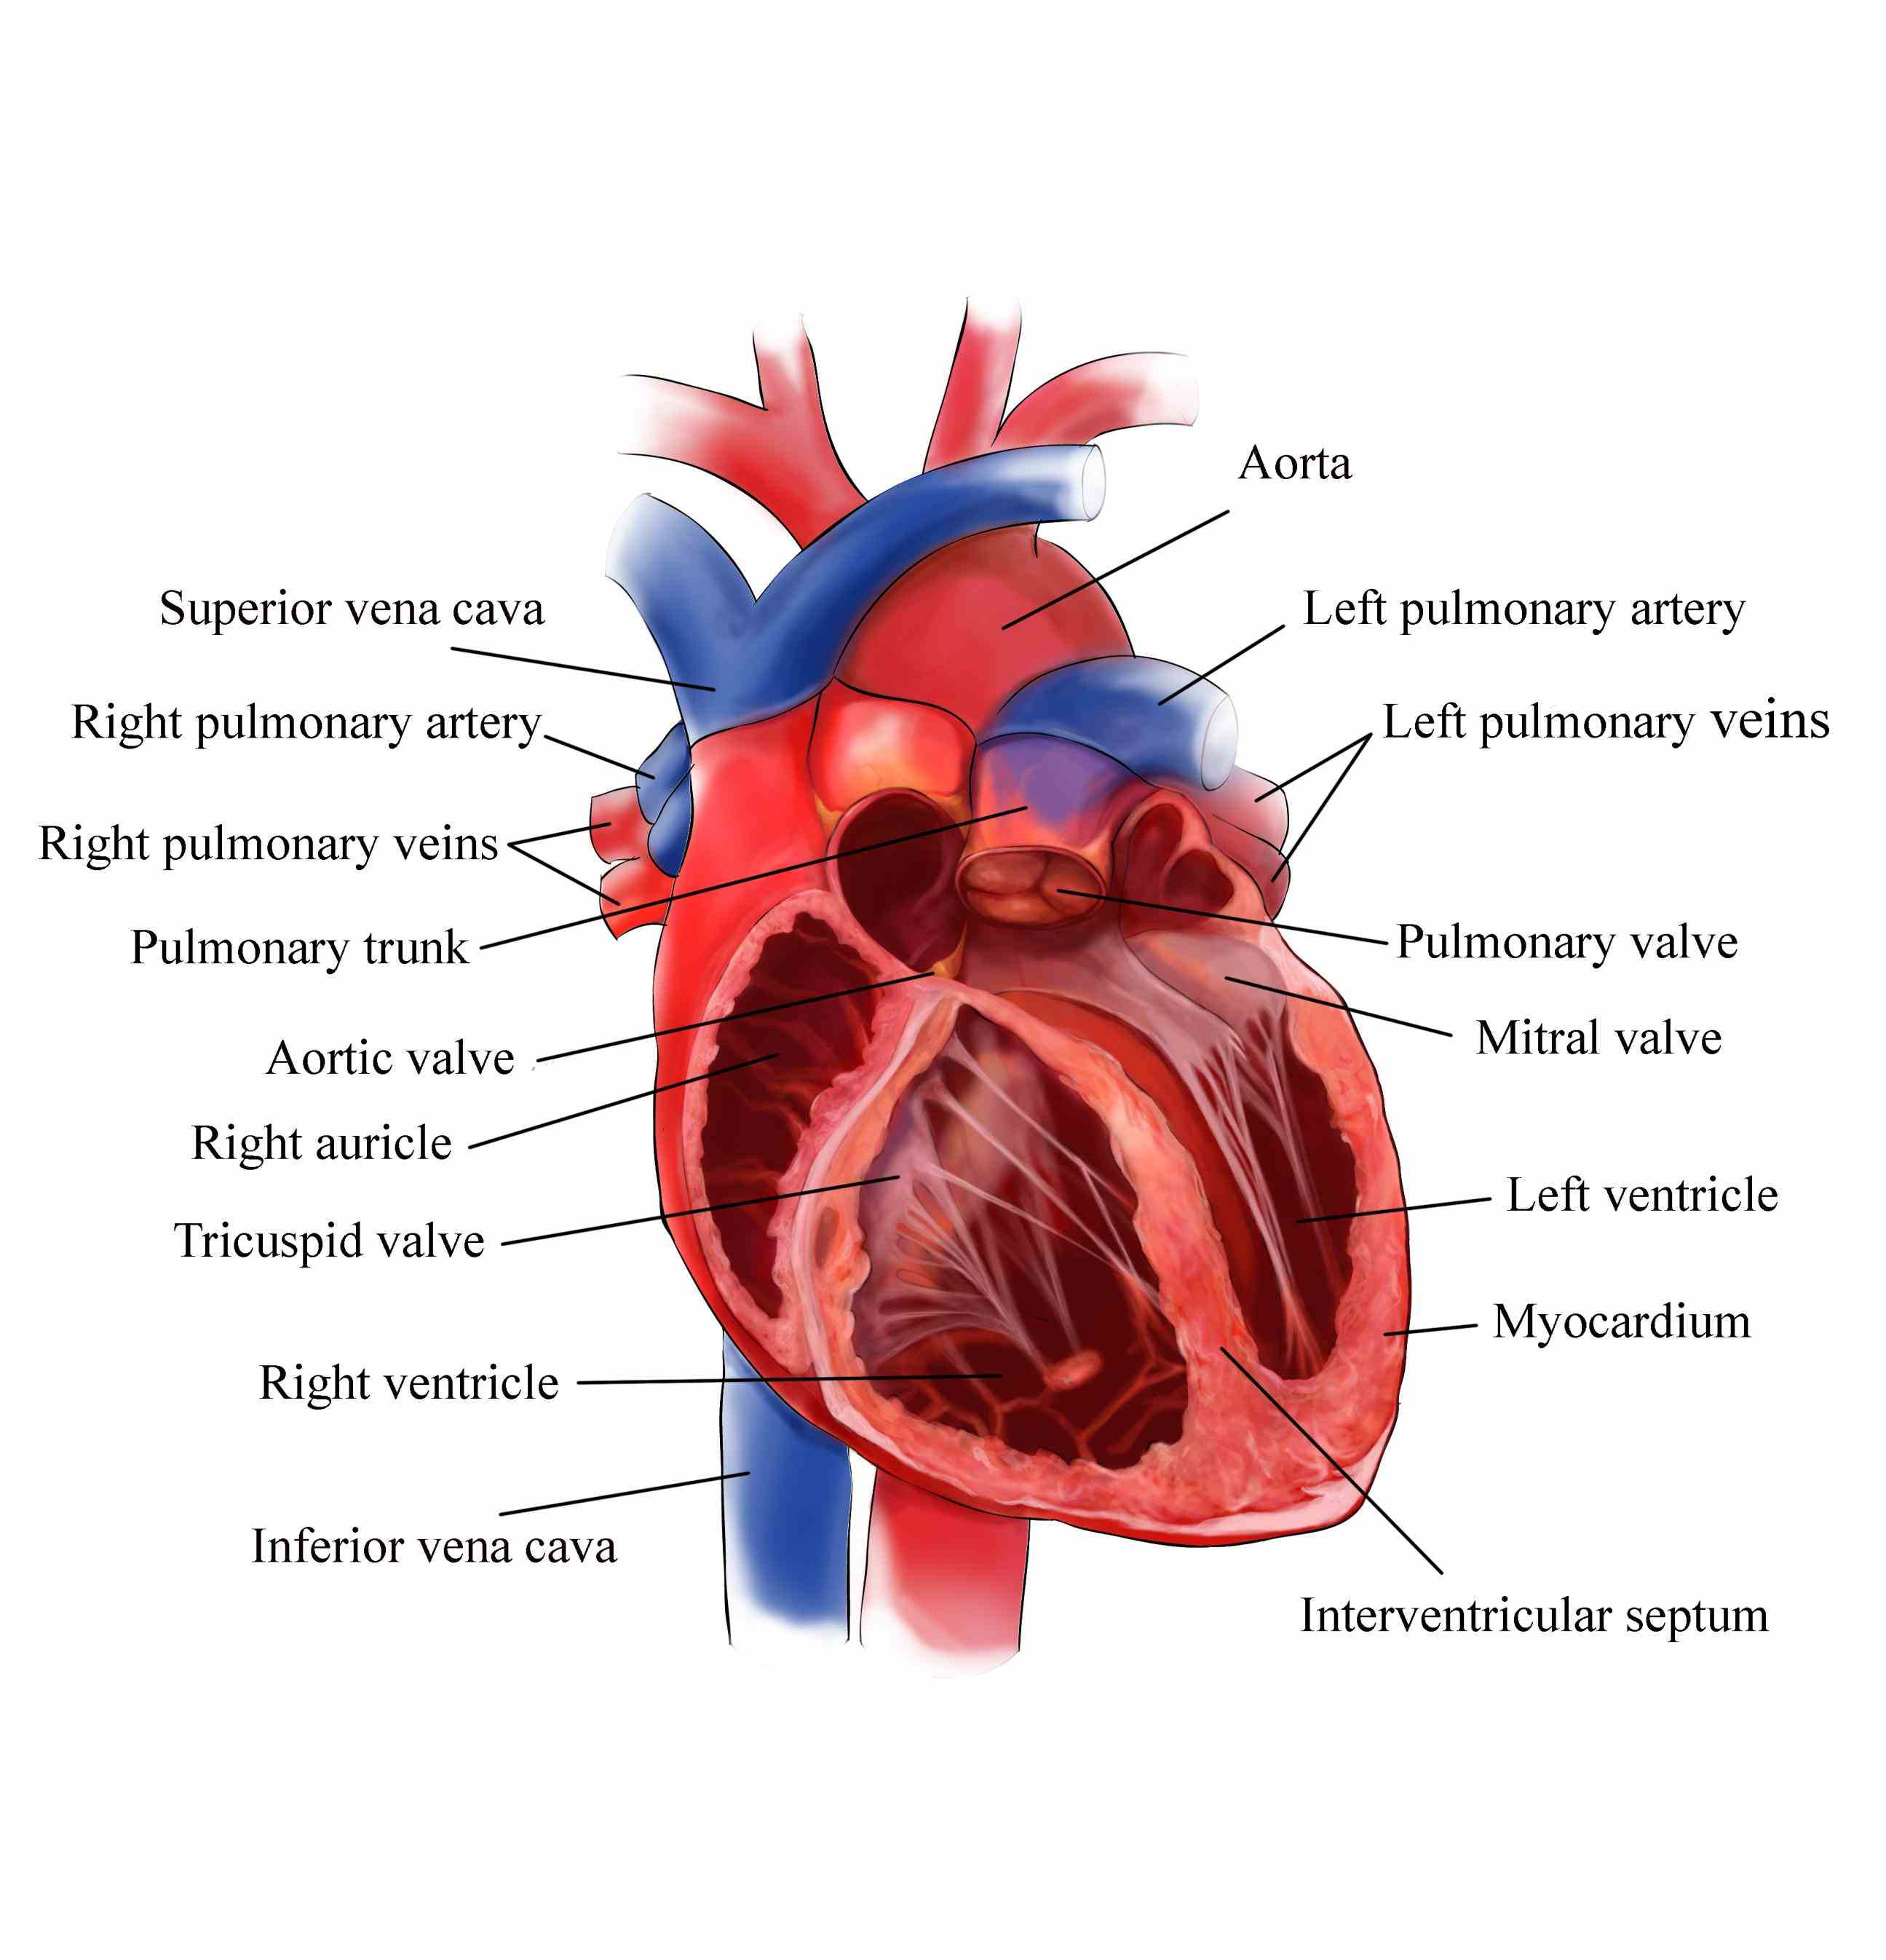 the chambers of heart showing not just a clear view anatomy but how valve tissue actually pulsates inside your